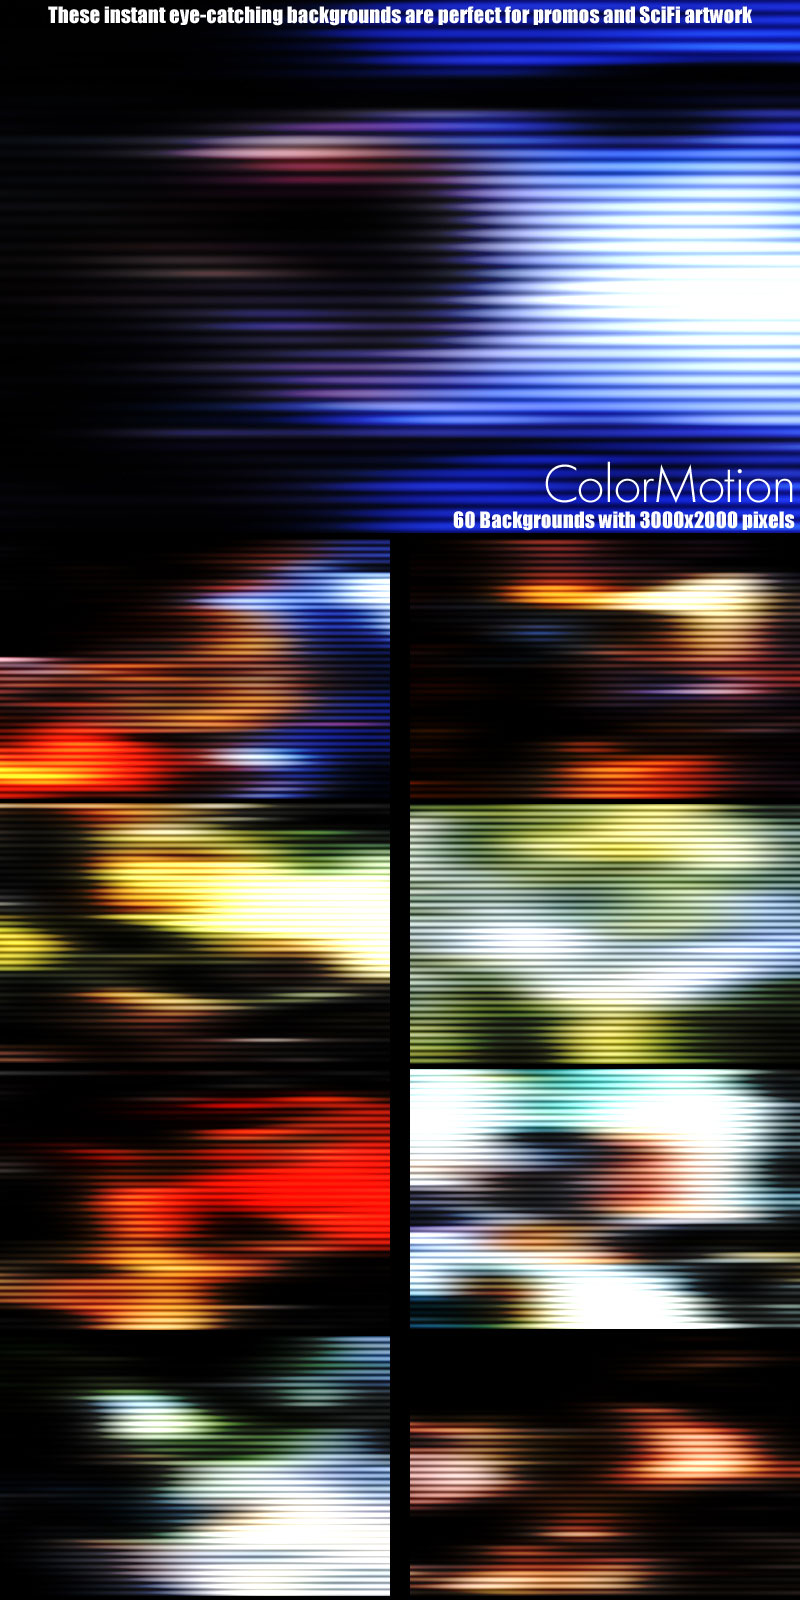 ColorMotion